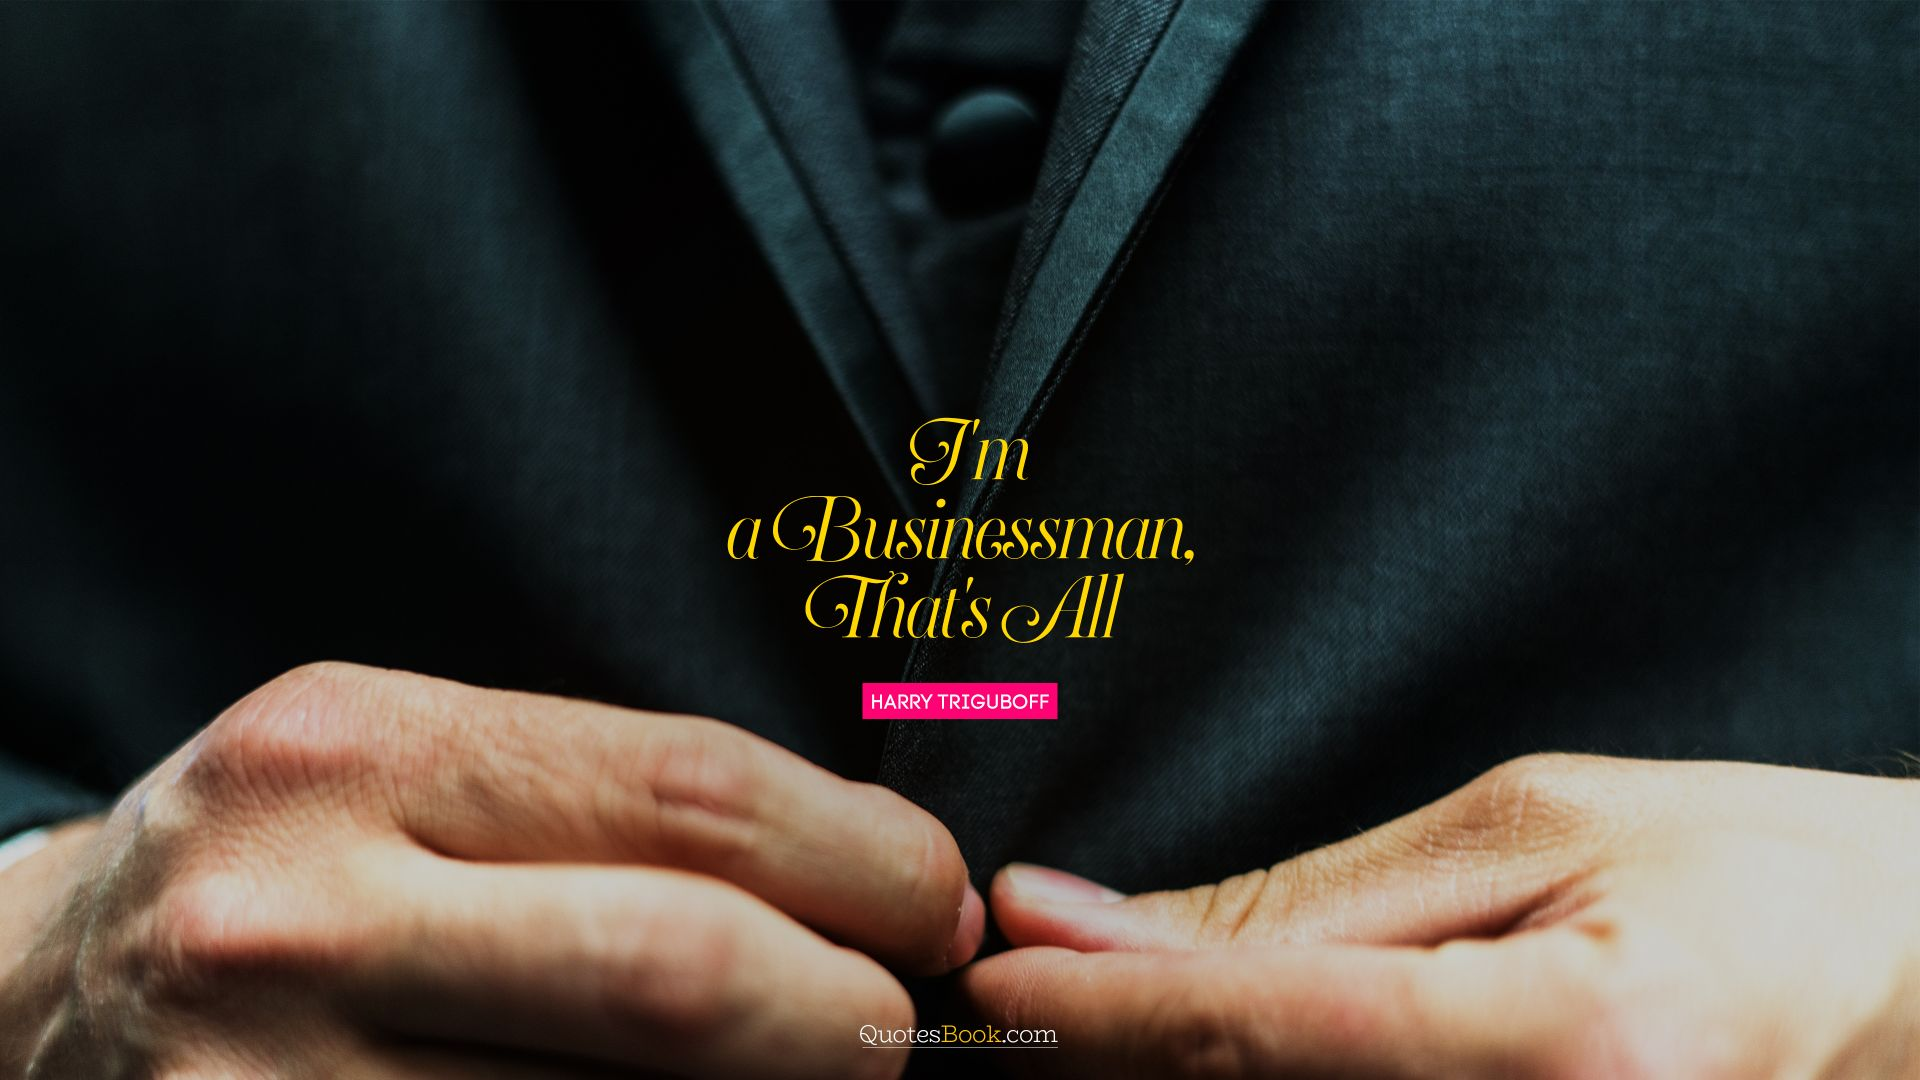 I'm a businessman, that's all. - Quote by Harry Triguboff